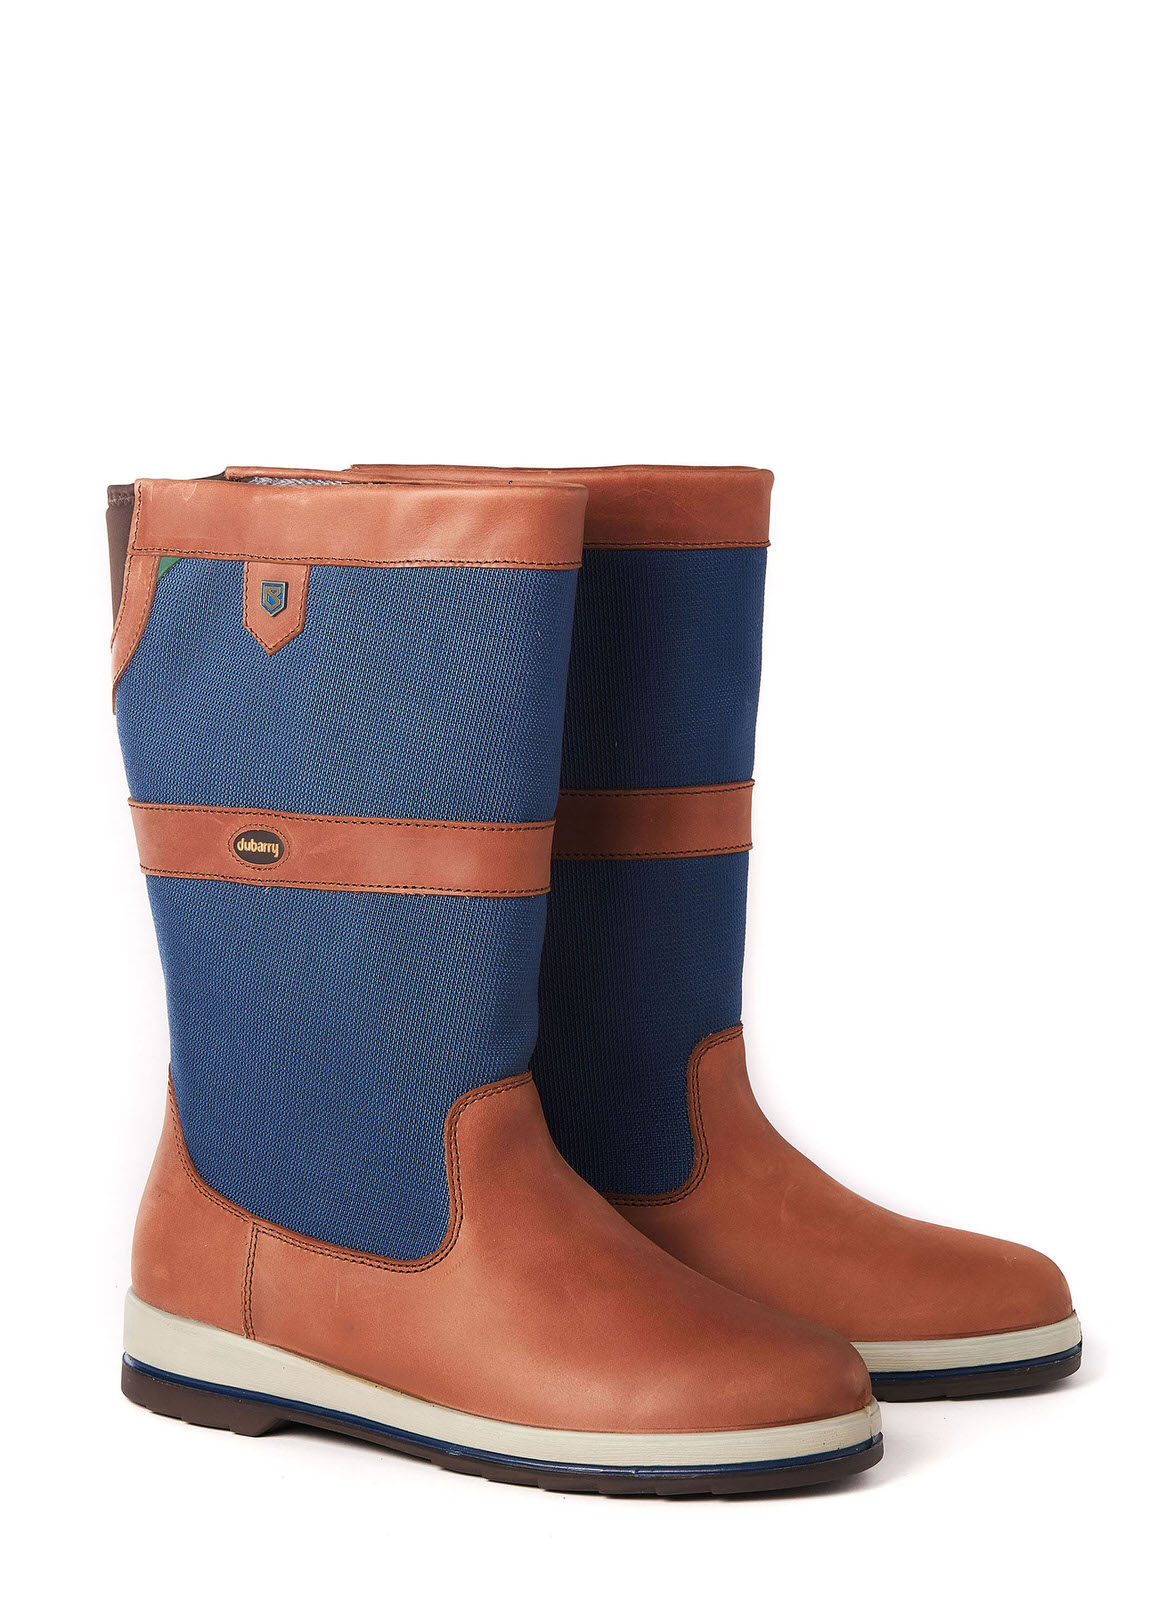 Bottes de navigation Shamrock ExtraFit™ - Navy/Brown